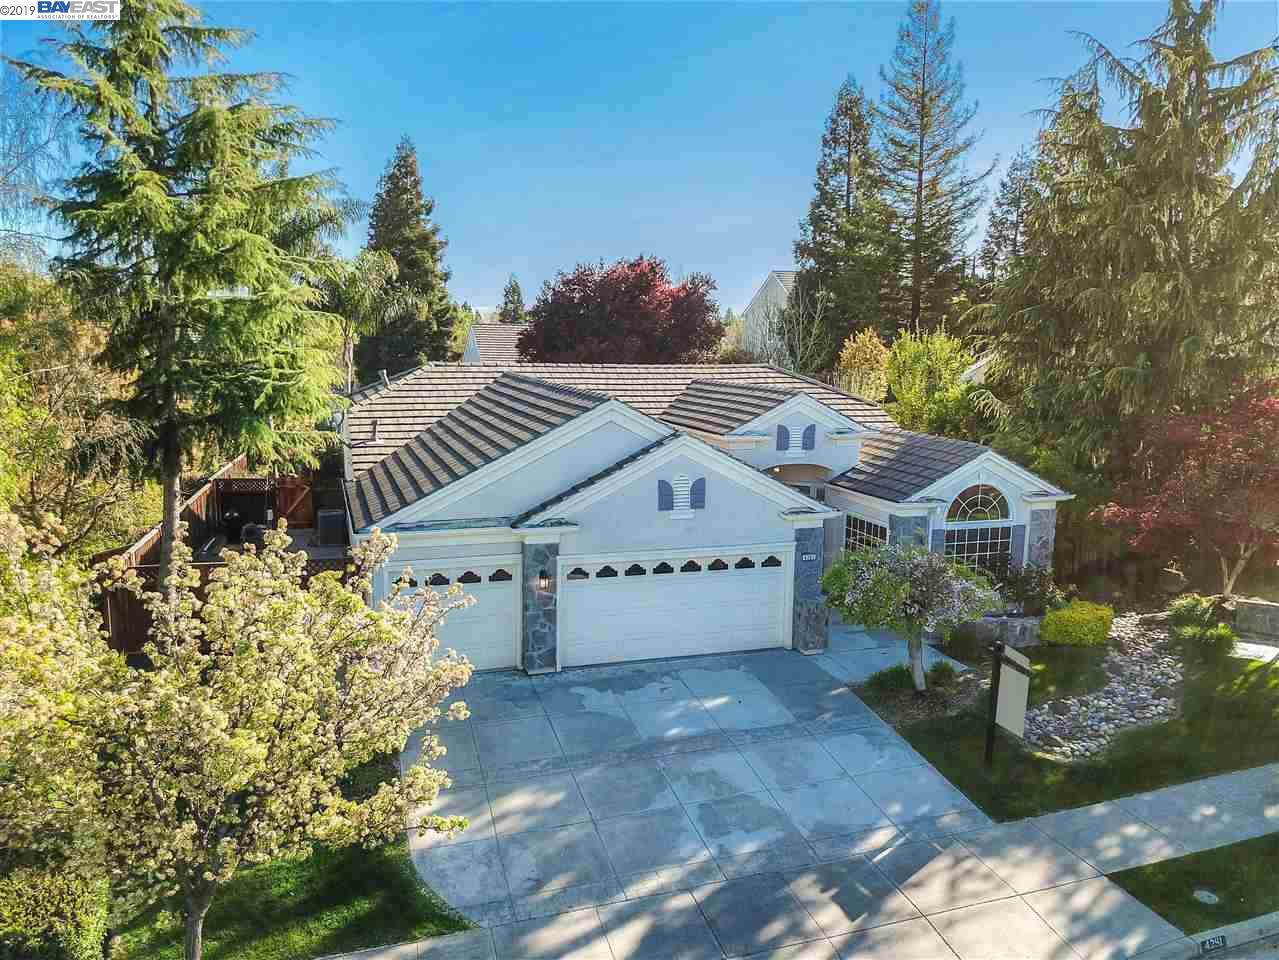 Property for sale at 4281 Bellmawr Dr, Livermore,  California 94551